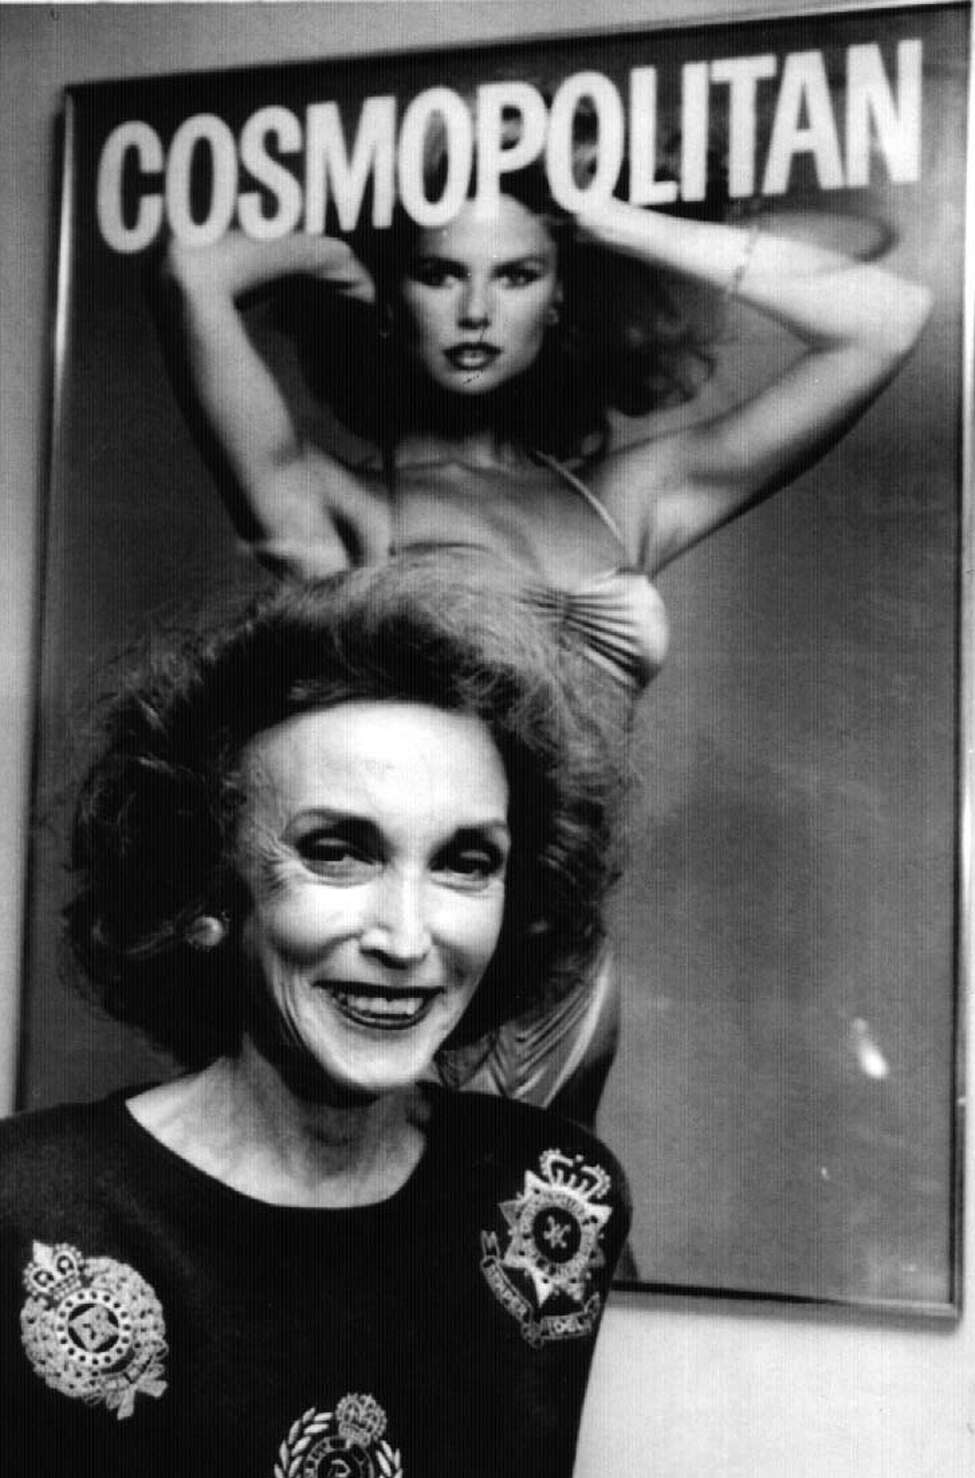 Helen Gurley Brown, Editor-in-chief of Cosmopolitan magazine photographed on April 26, 1990.